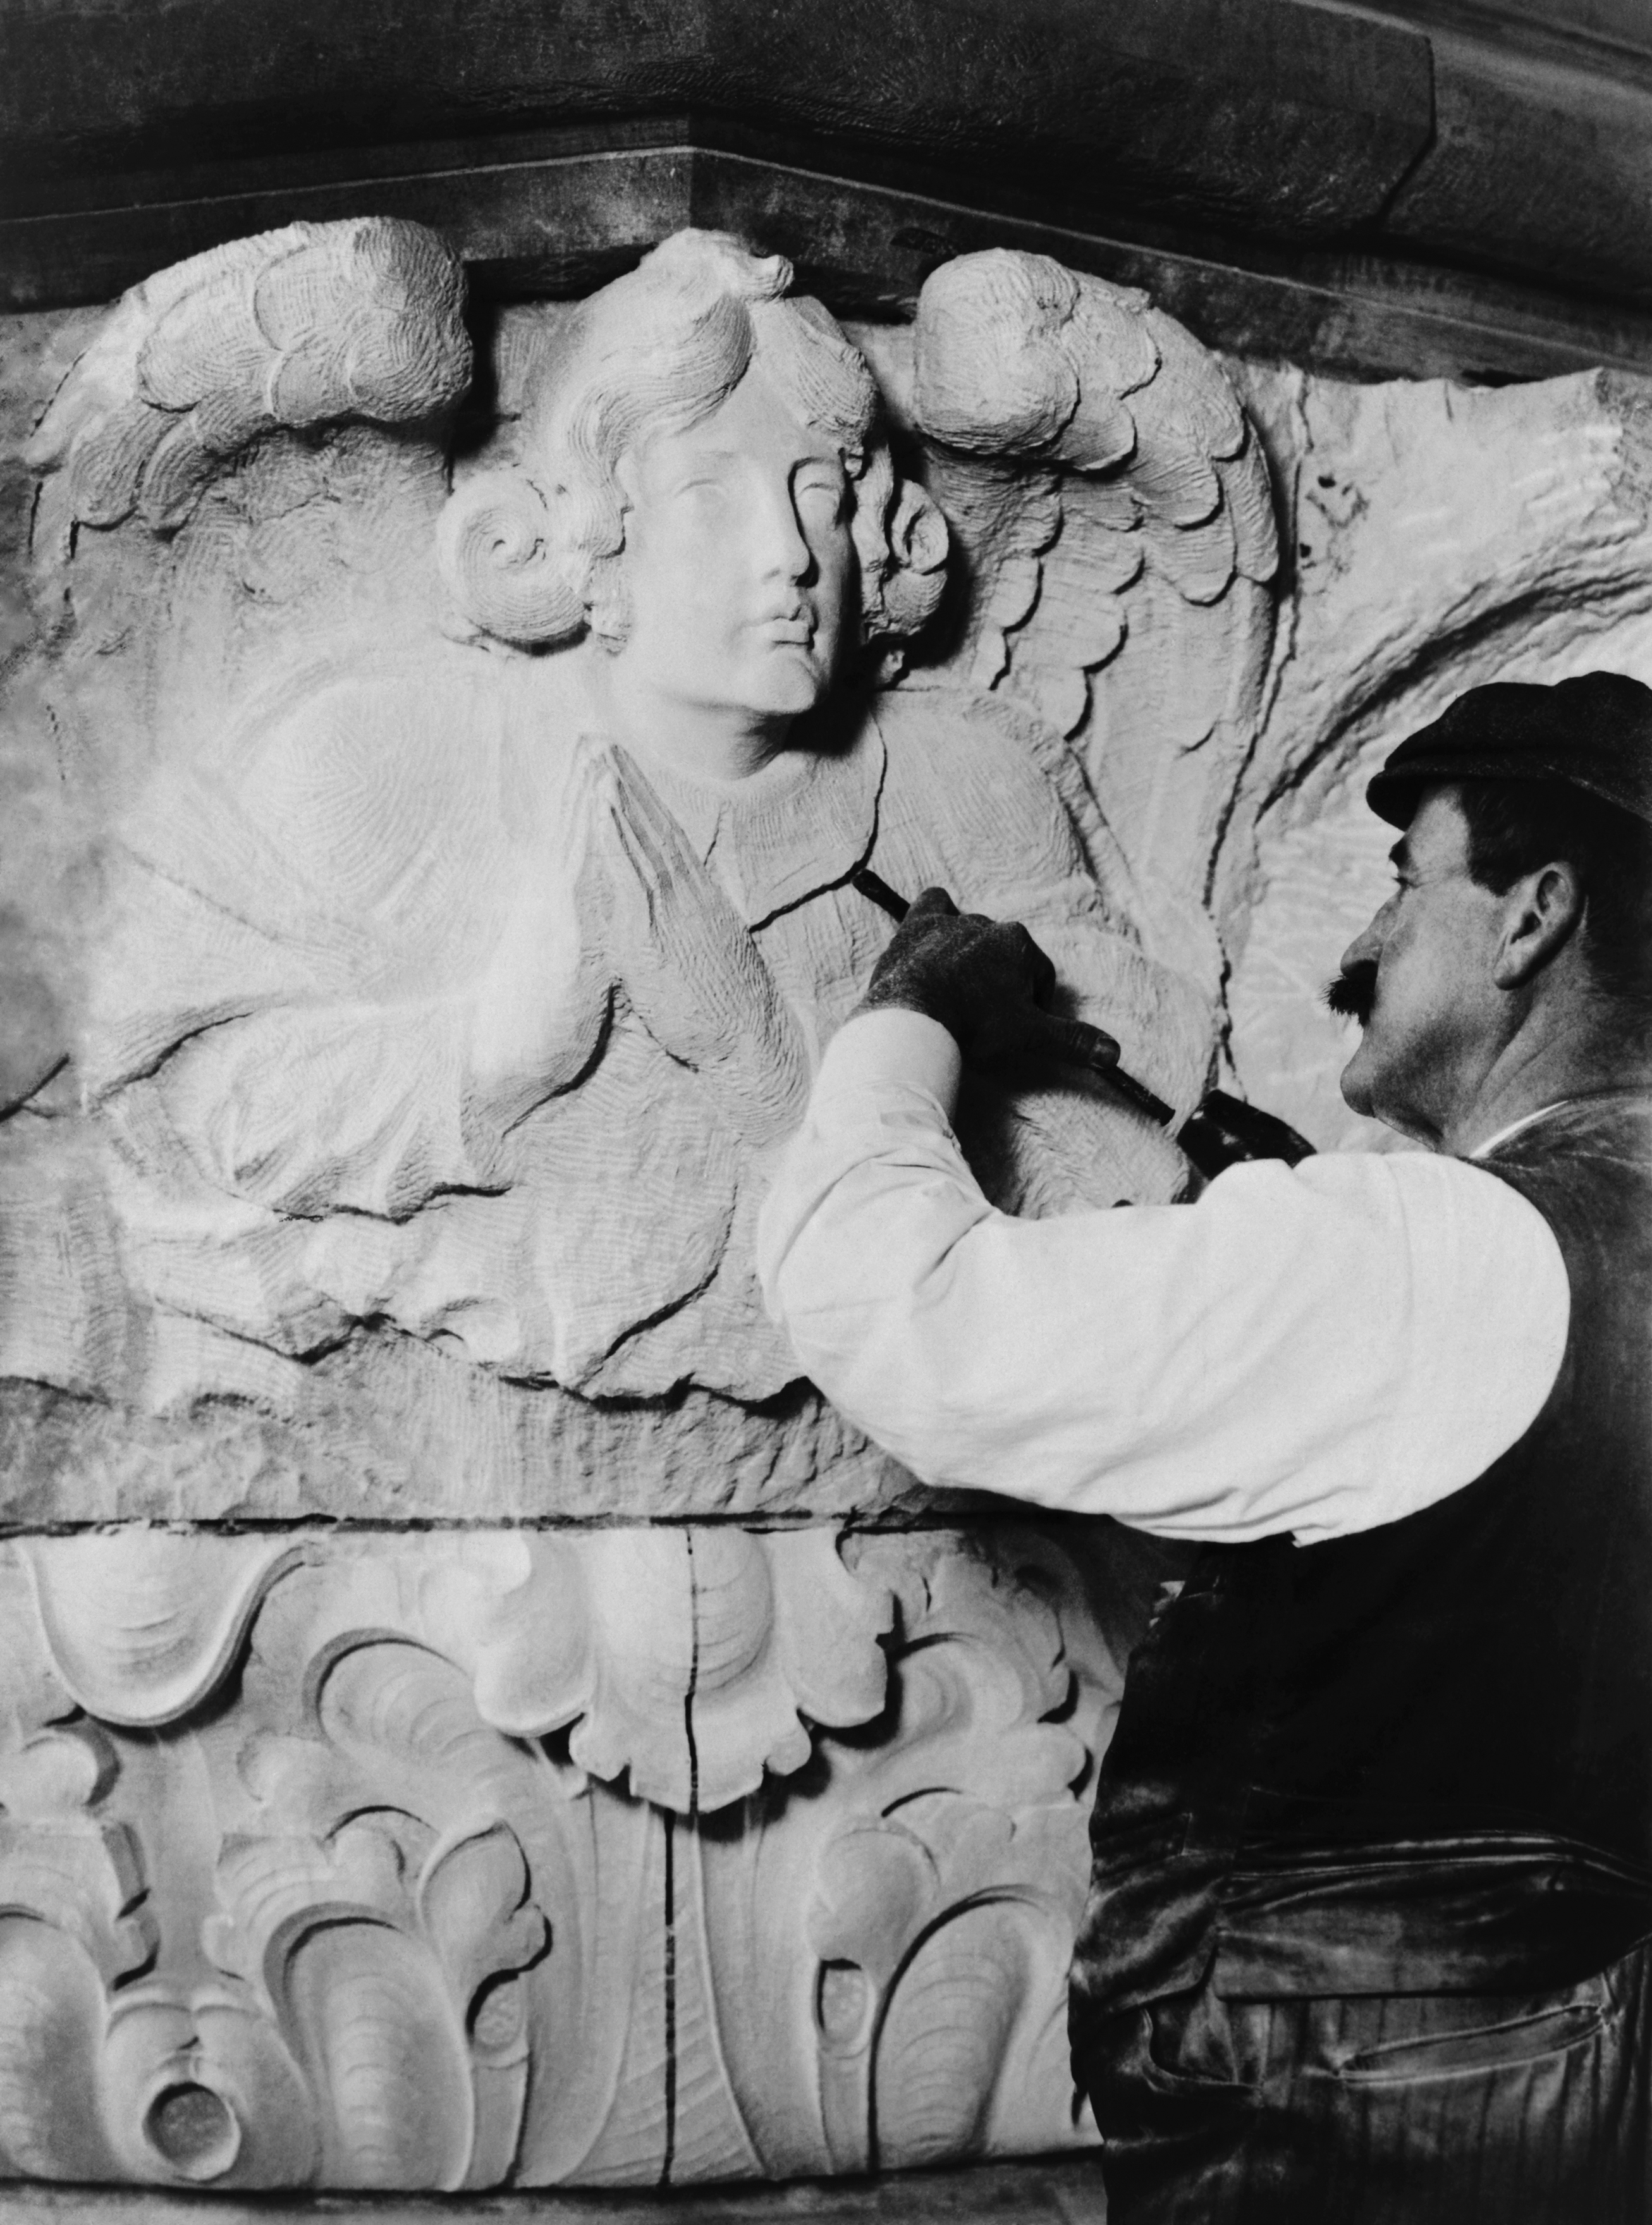 Stone carving wikipedia